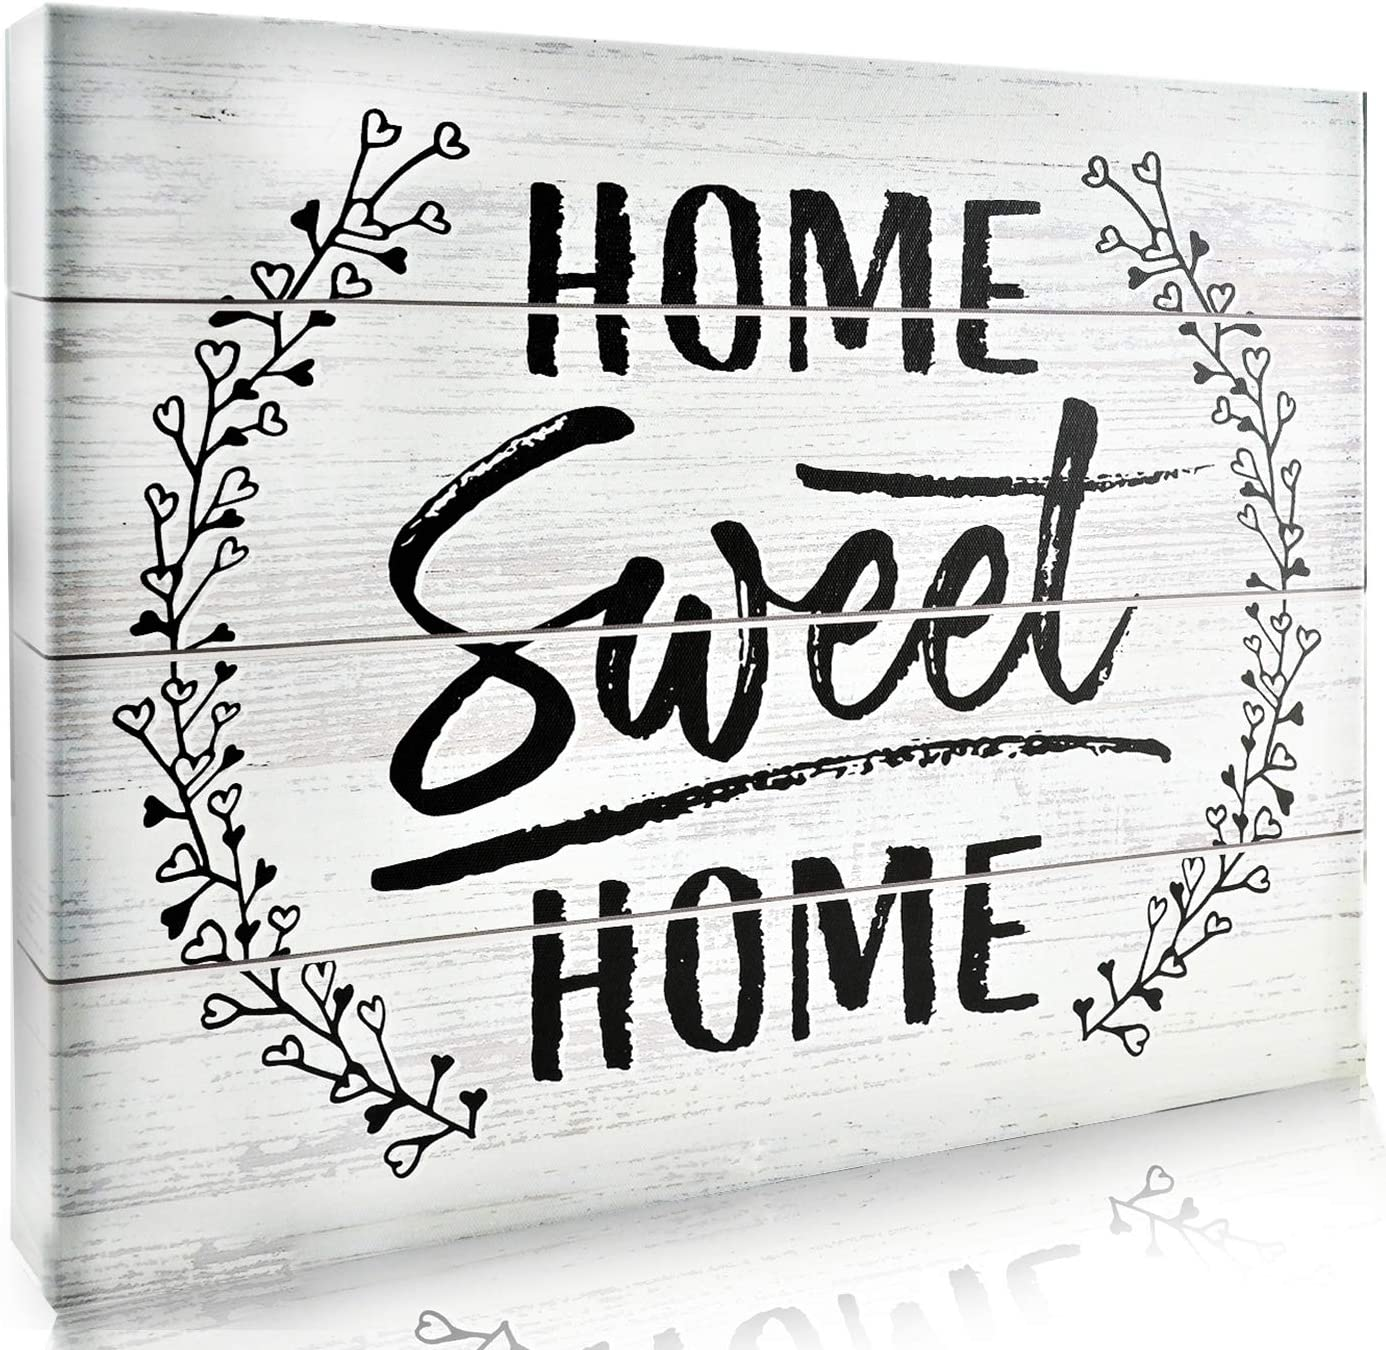 Bigtime Signs Home Sweet Home Sign - Wrapped Canvas Wall Art Decor for Living Room, Bedroom, Kitchen - Rustic Wood and Quote Print - Easy to Hang - 1.5-inch Thick, 16 x 12 Inches